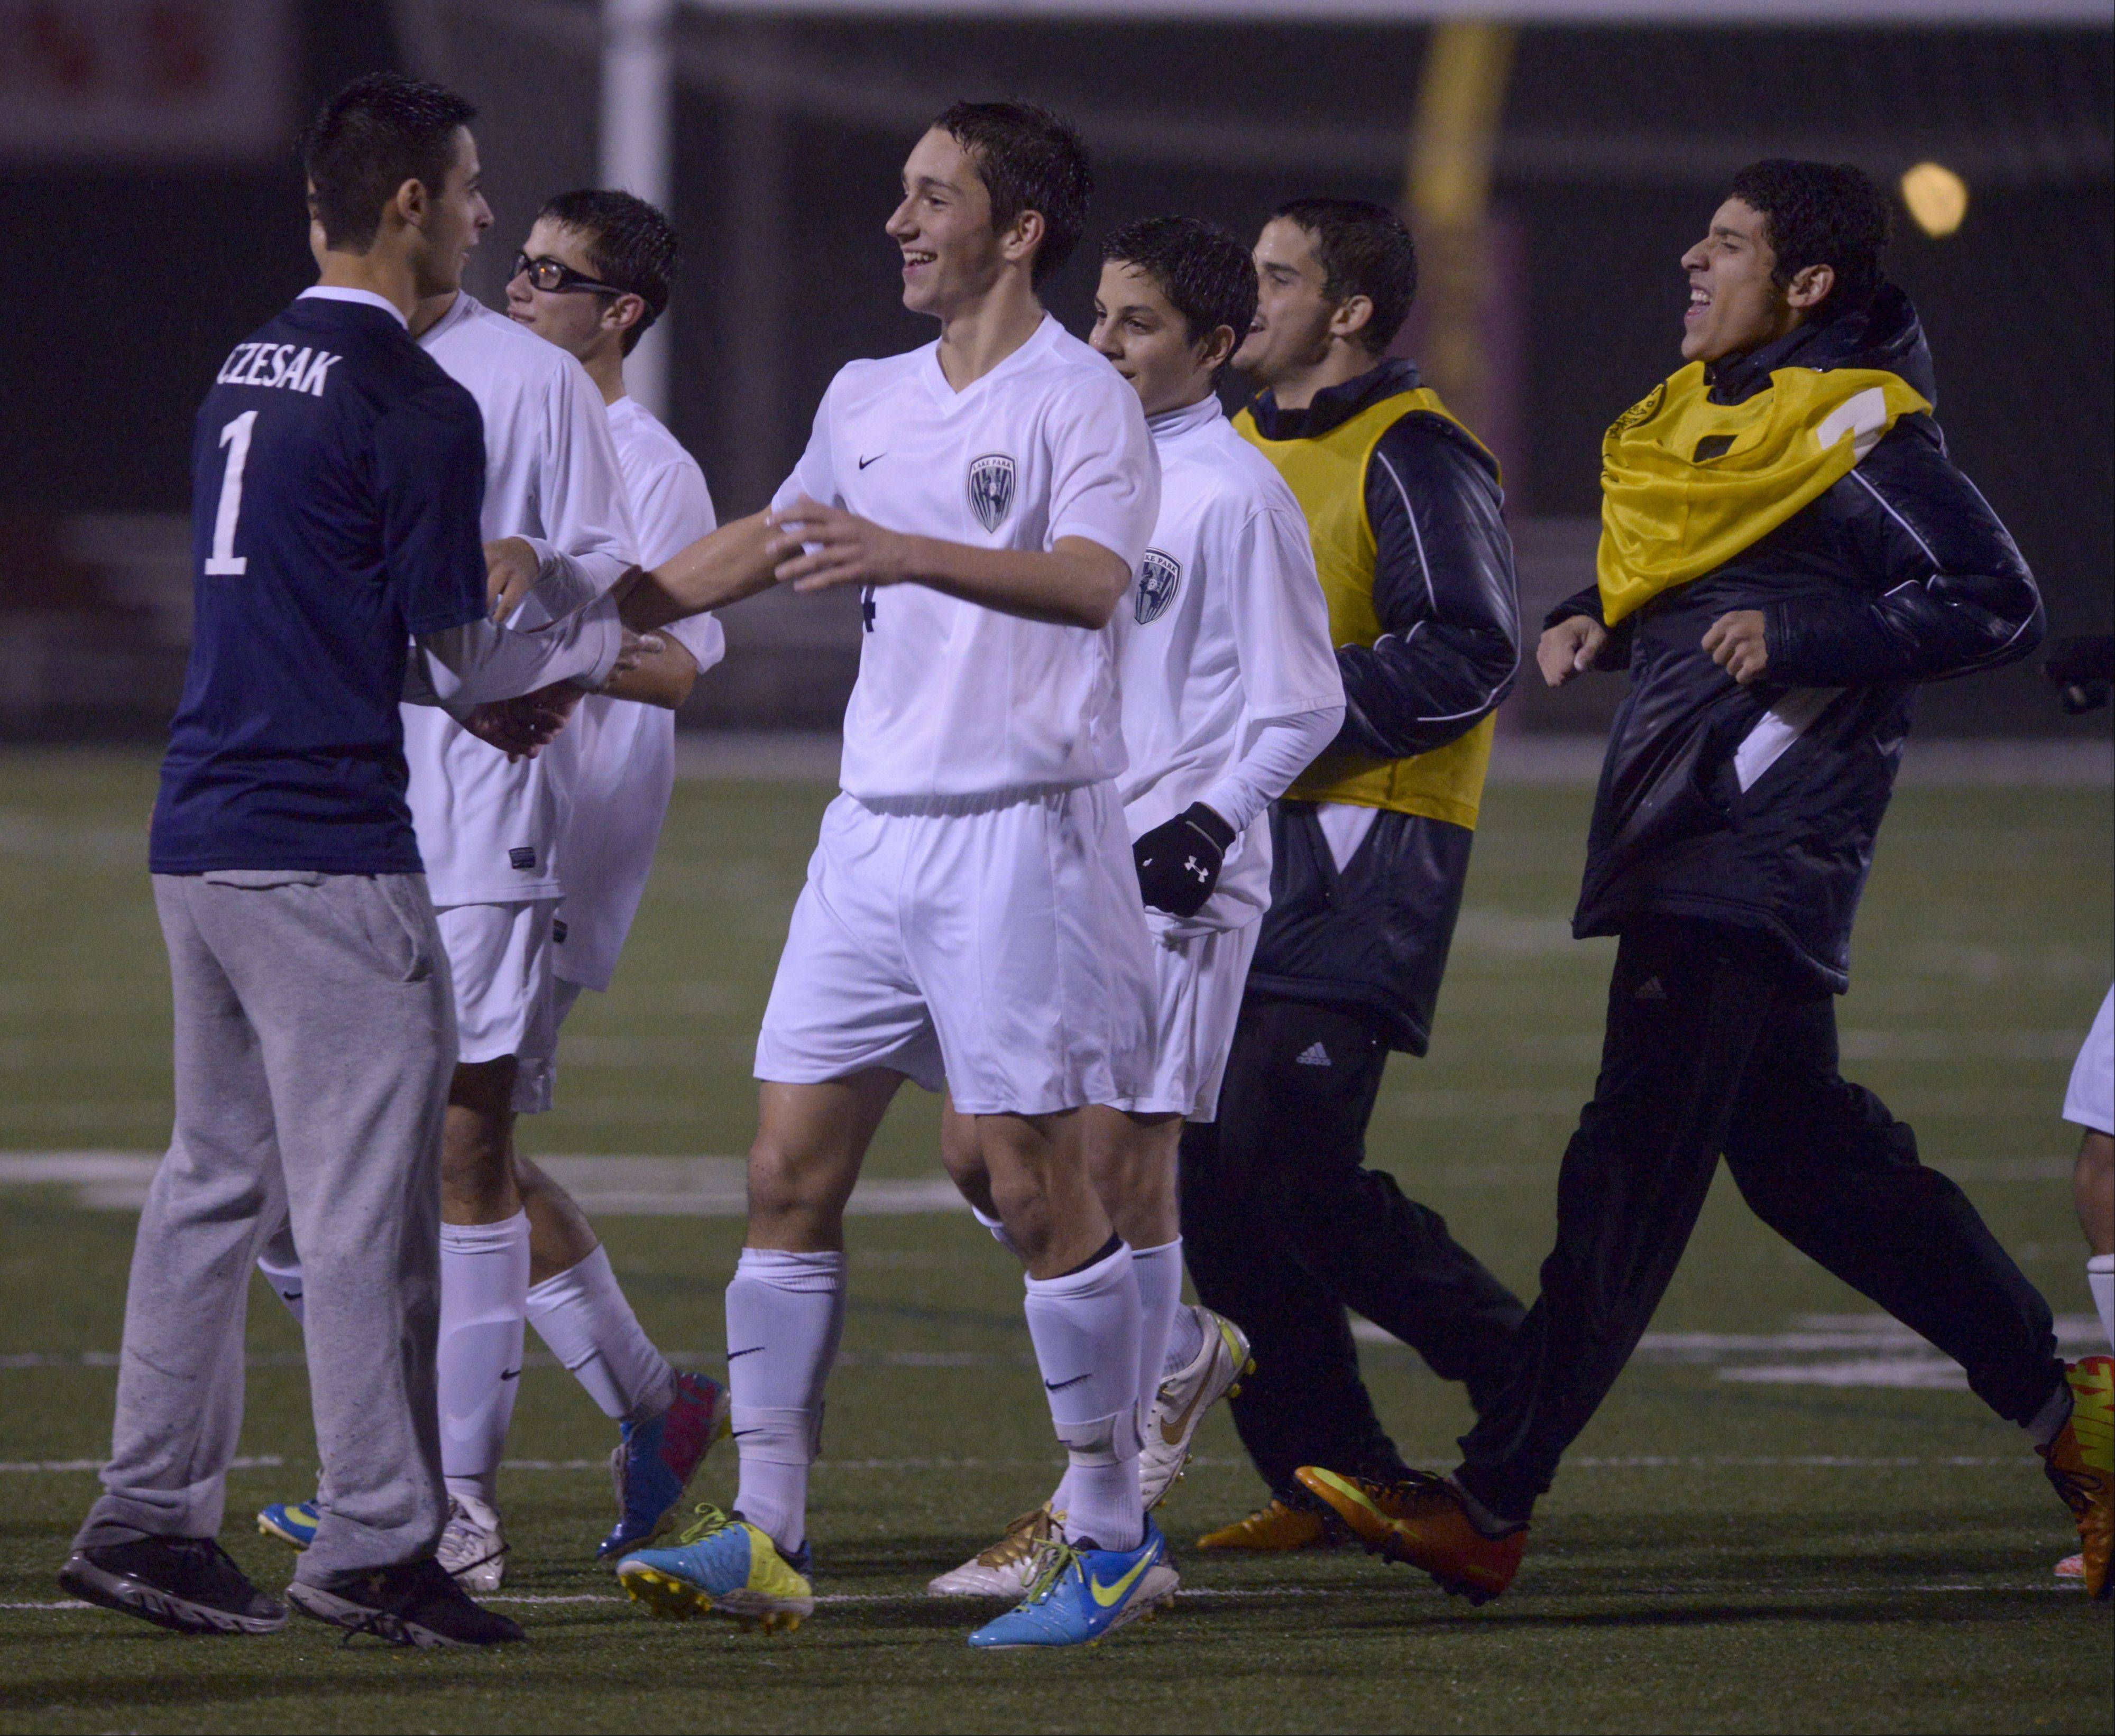 Lake Park players celebrates their win over Elk Grove during the Class 3A Schaumburg sectional semifinals Wednesday.